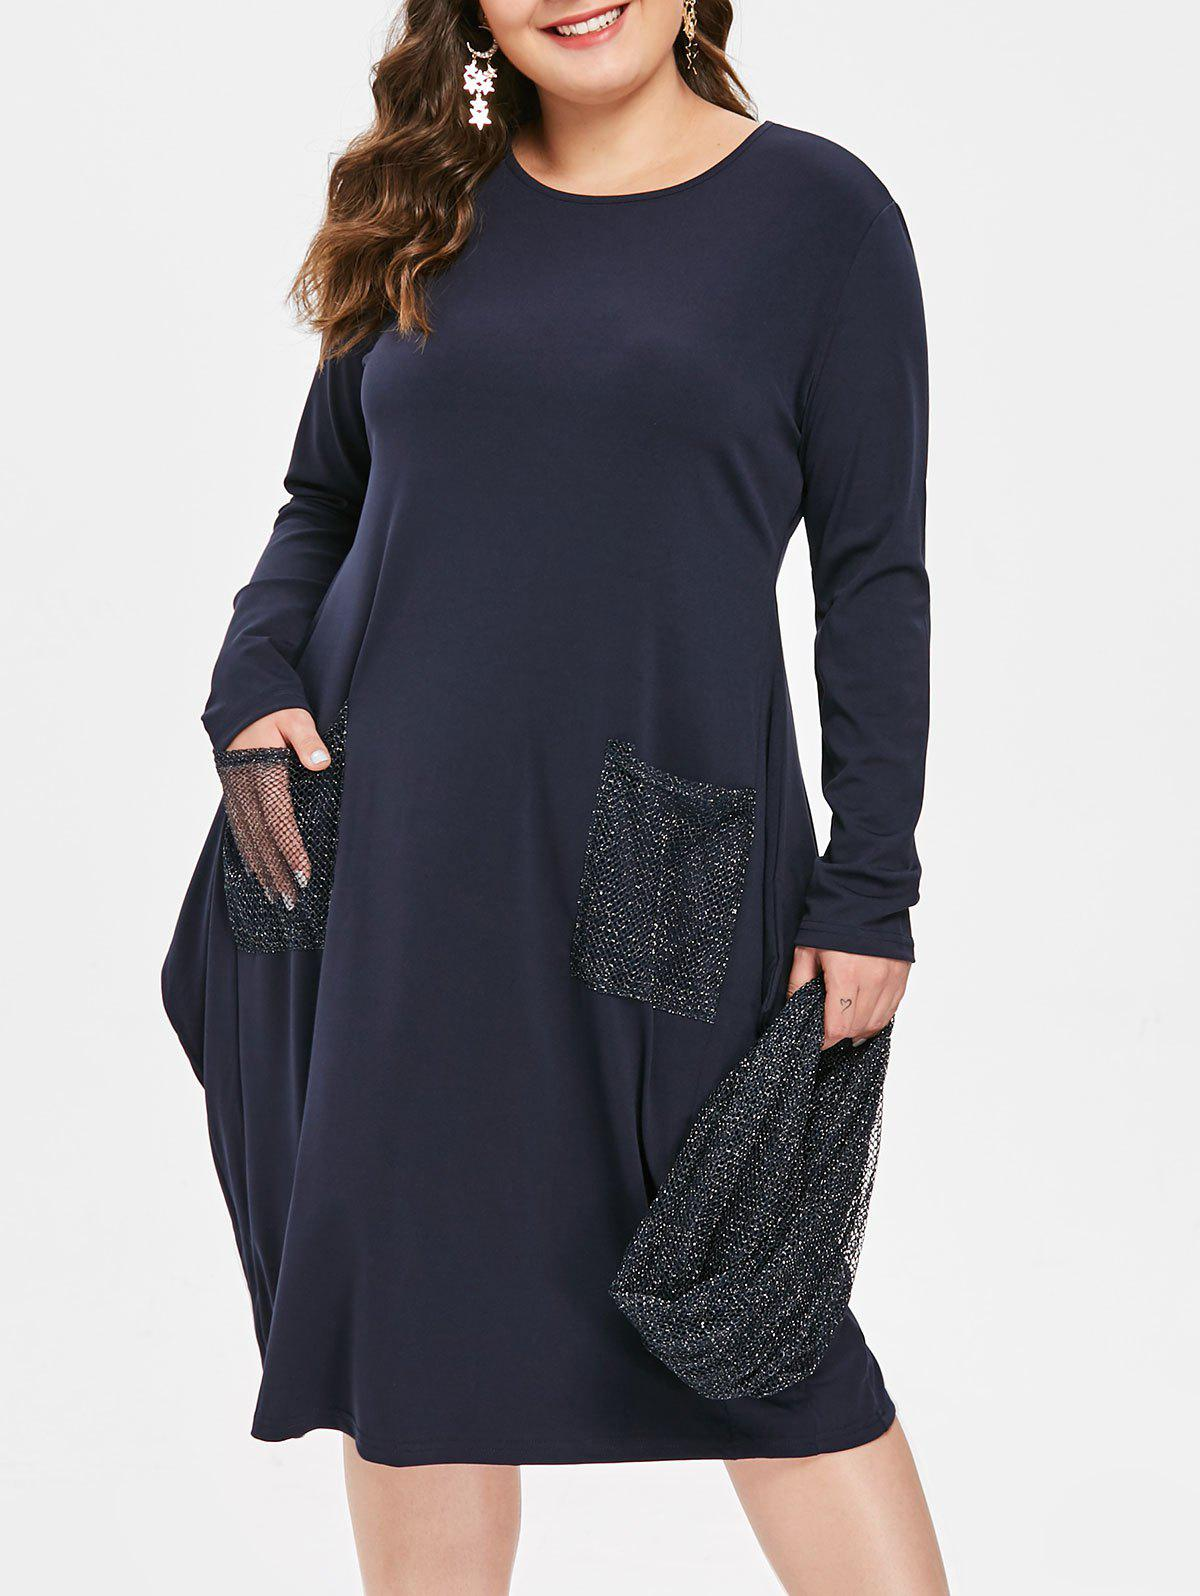 442e6d39fa0 2019 Front Pockets Plus Size Knee Length Dress With Scarf